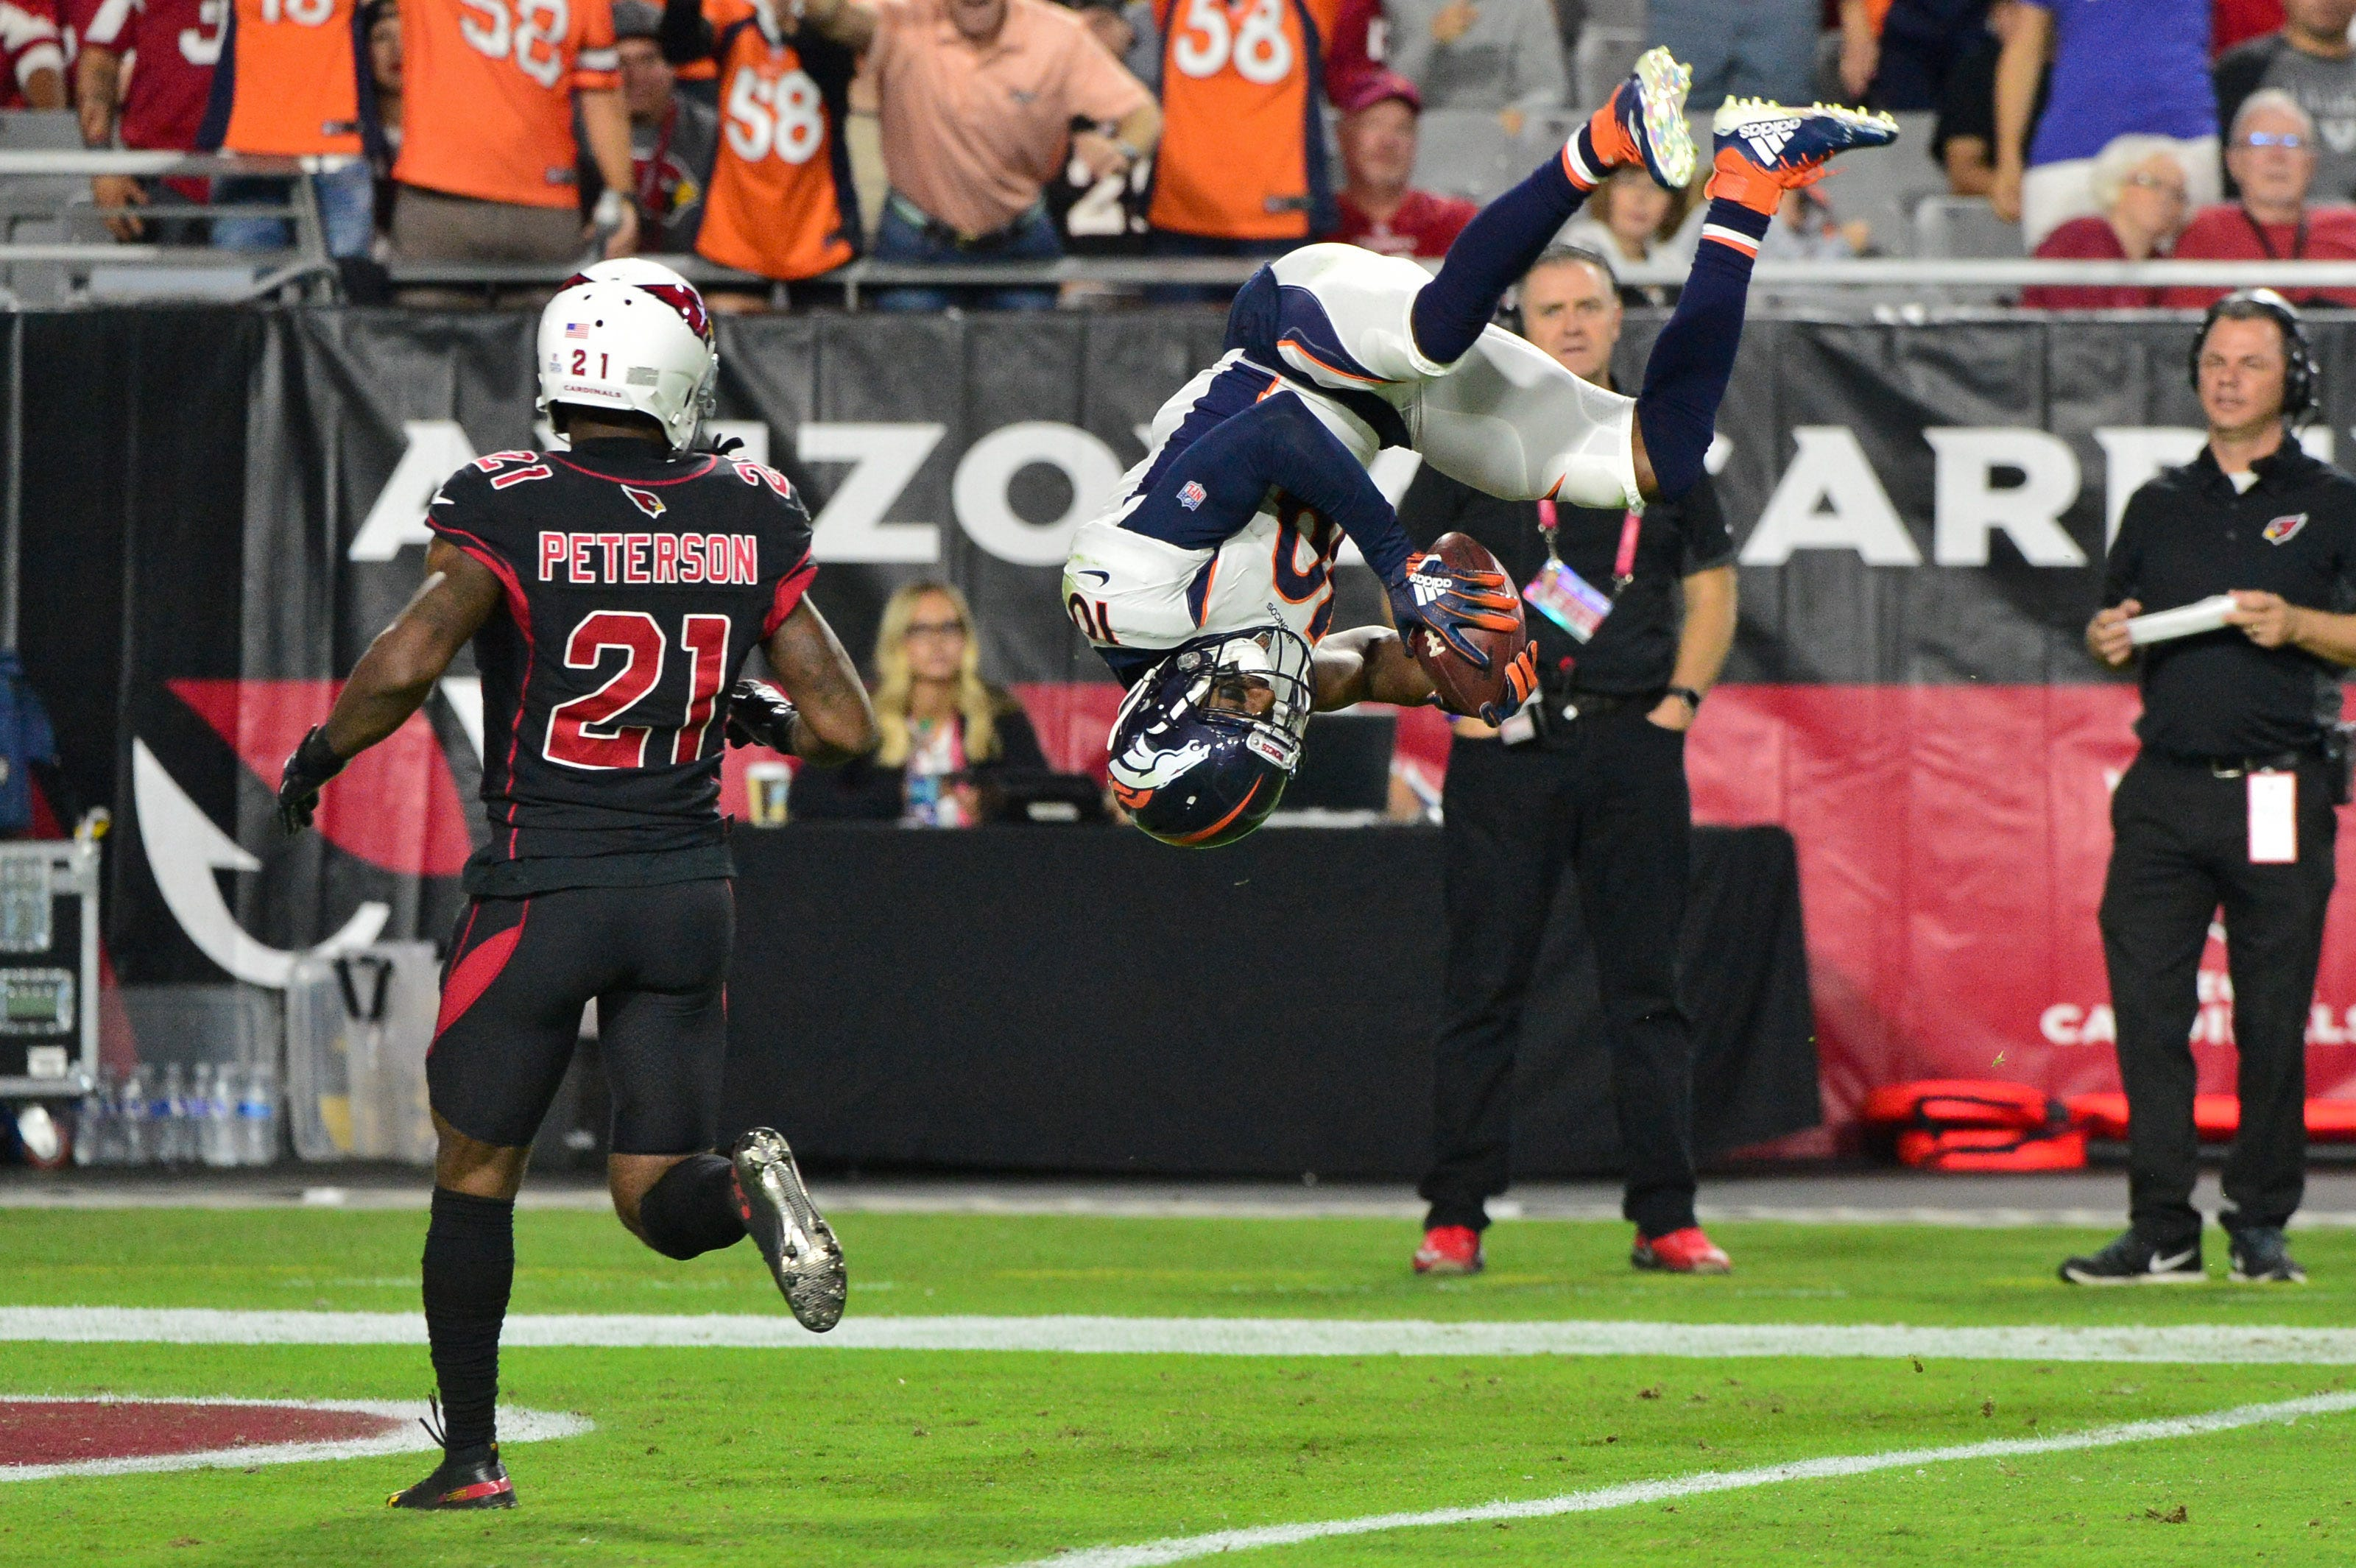 Denver Broncos wide receiver Emmanuel Sanders flips into the end zone against the Arizona Cardinals at State Farm Stadium.